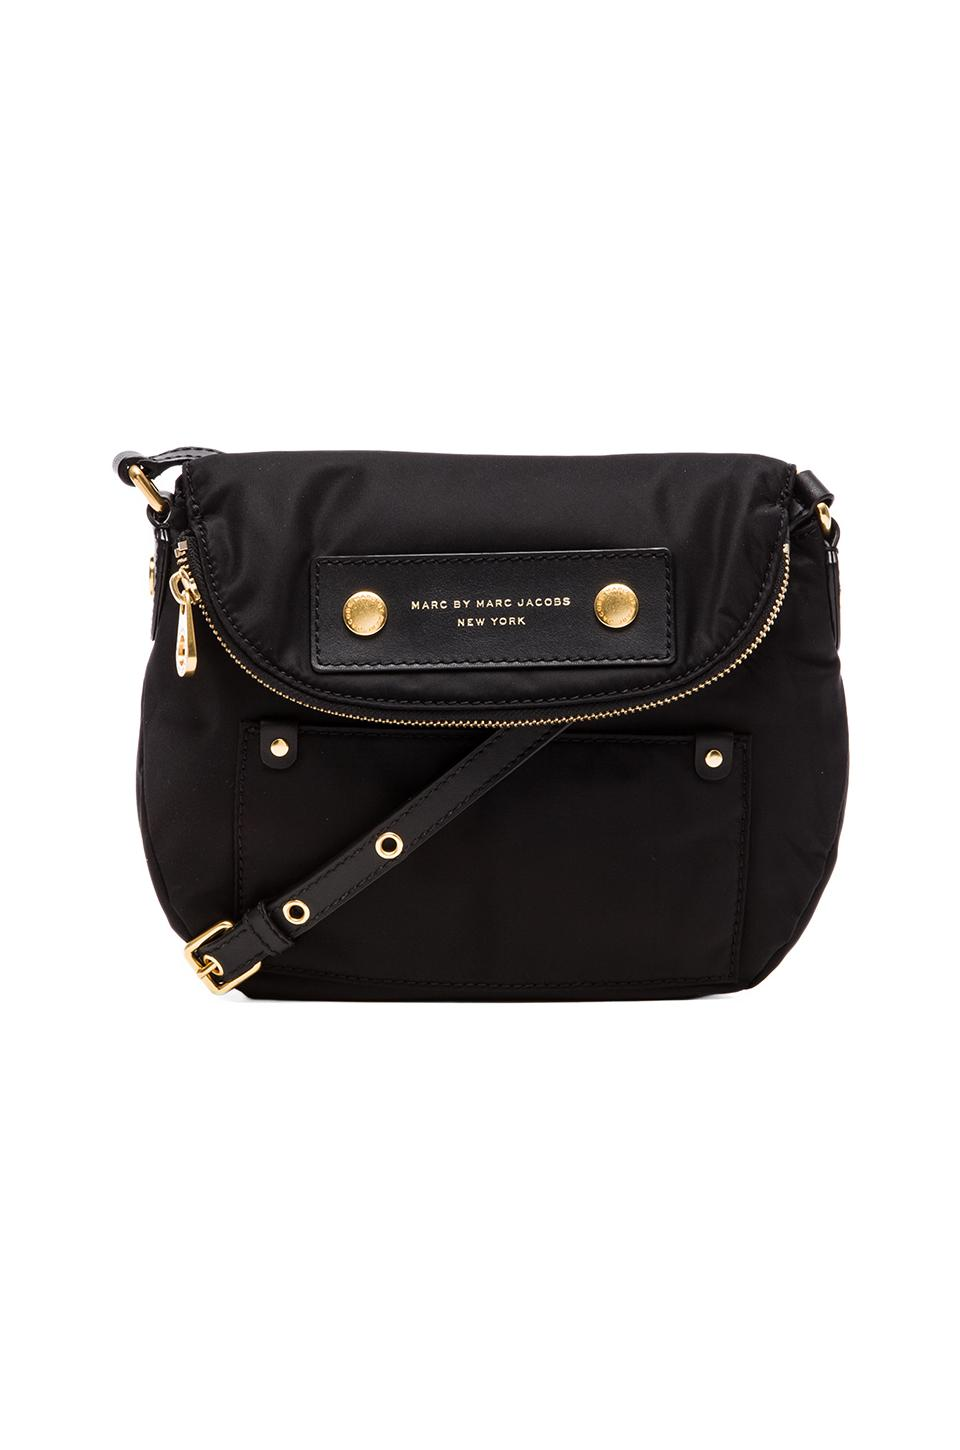 Marc by Marc Jacobs Preppy Nylon Mini Natasha in Black